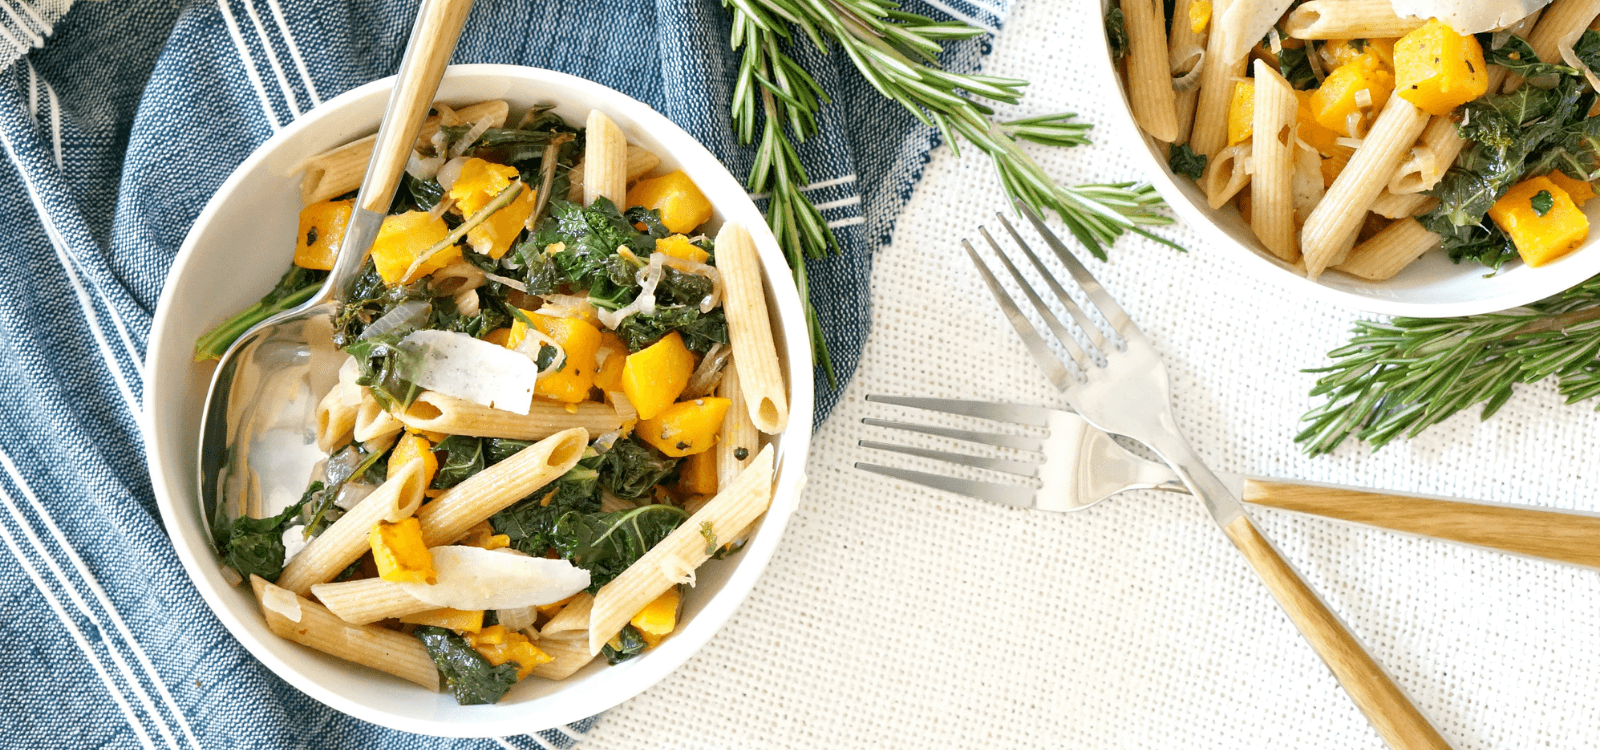 Vegan Butternut Squash and Kale Pasta Recipe